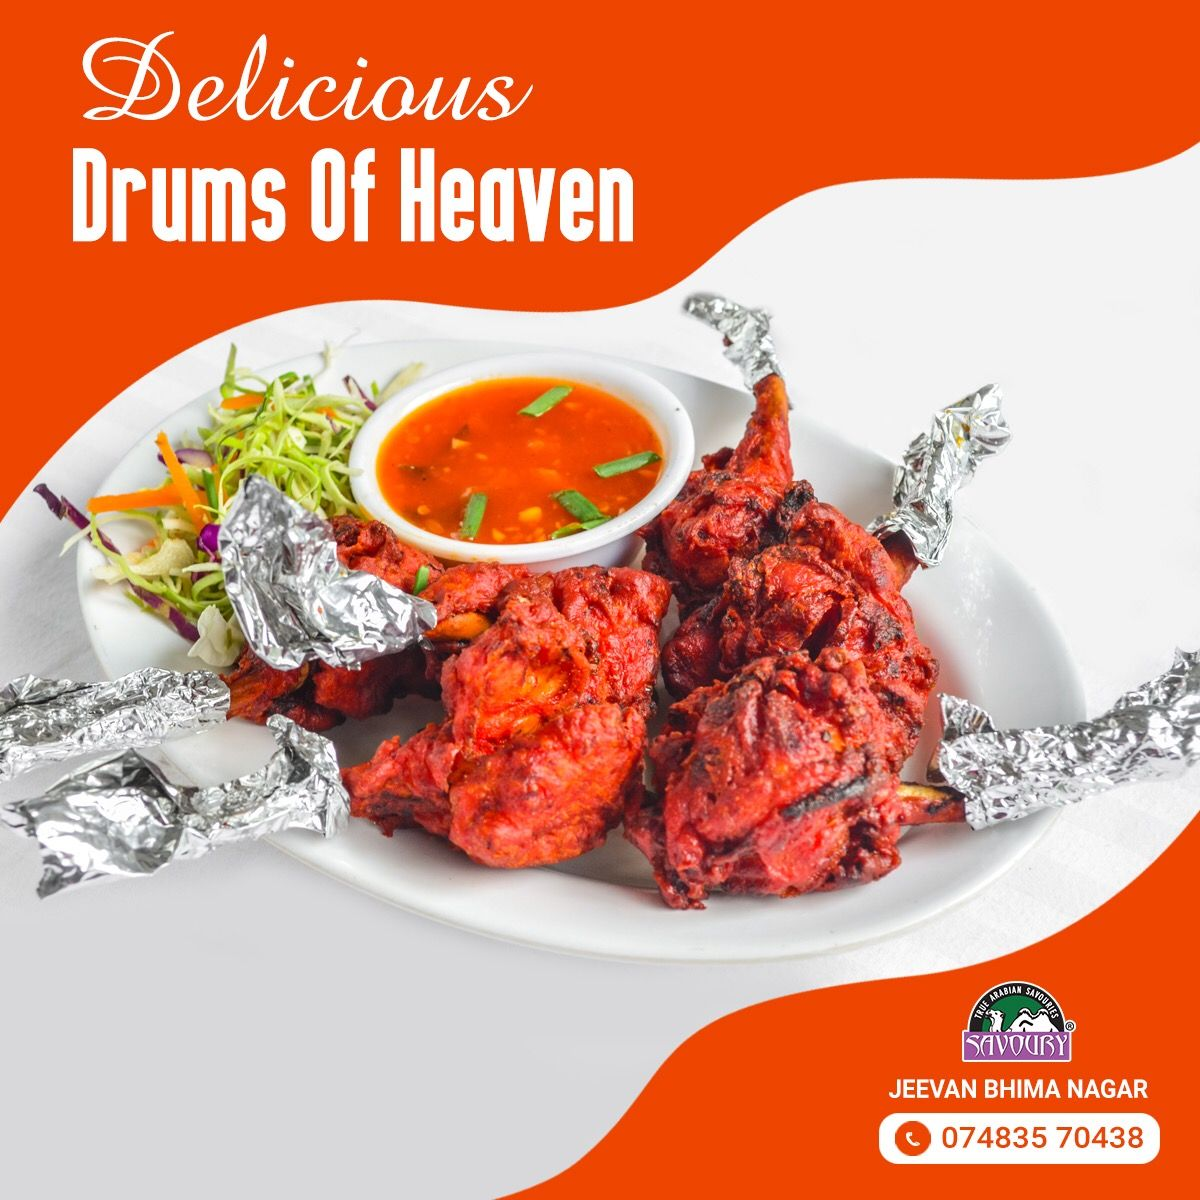 Take a slight twist with spices and sauces.  Visit and enjoy spicy Drums of Heaven from Savoury Jeevan Bhima Nagar.